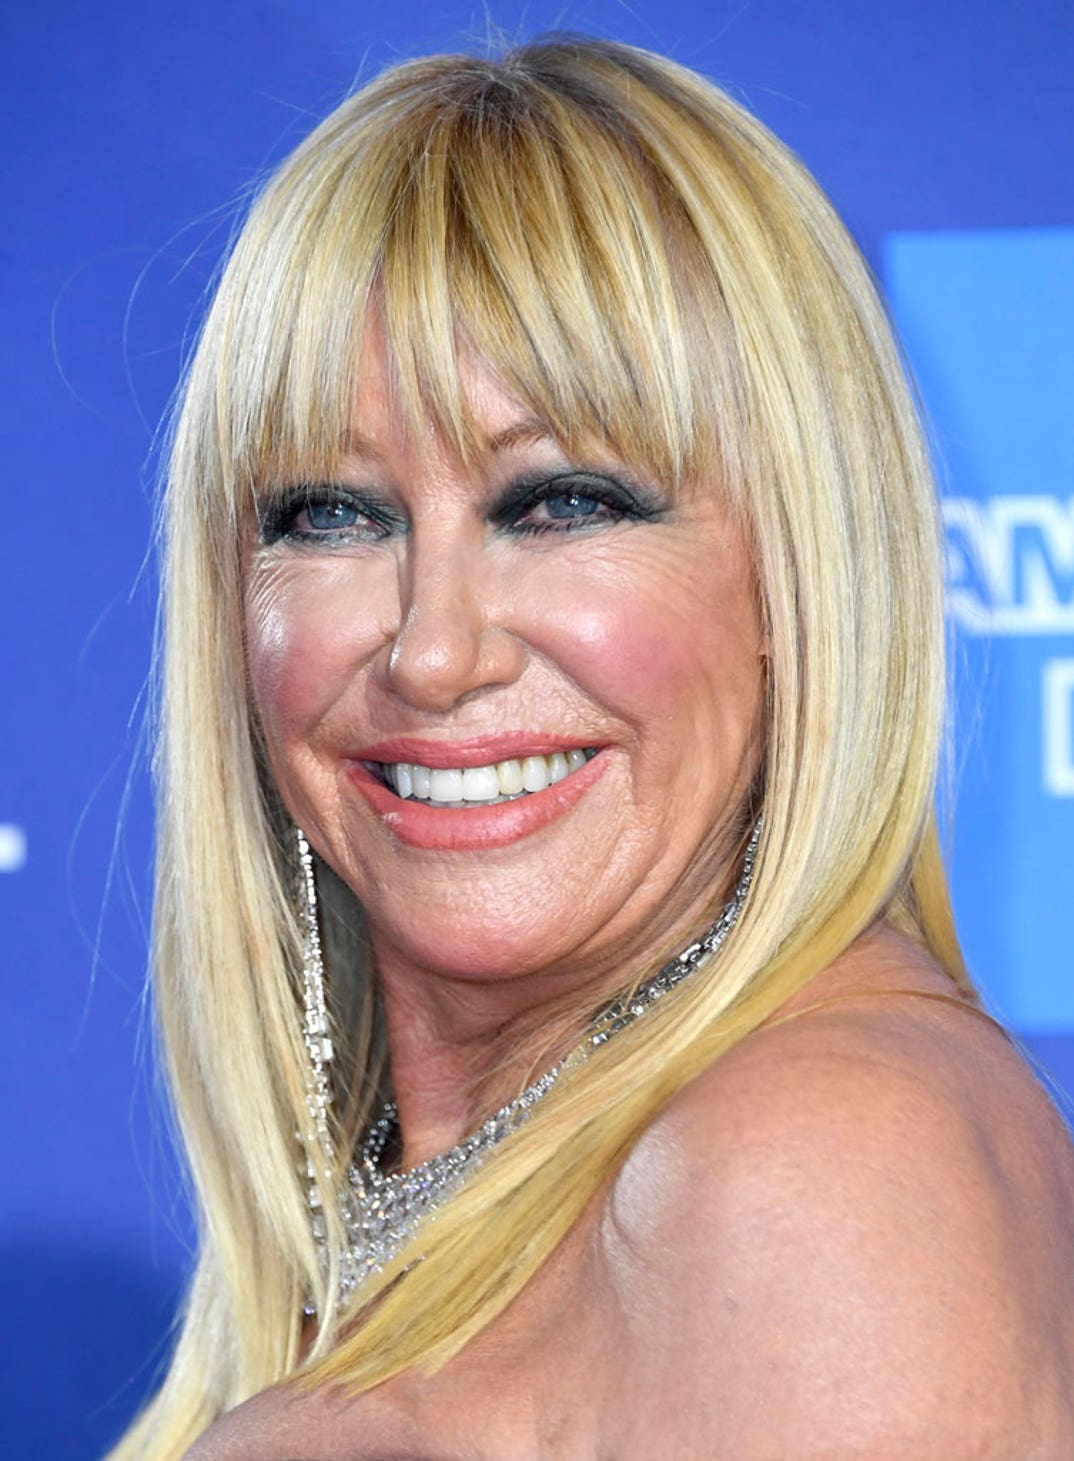 Suzanne Somers is now 72 years old